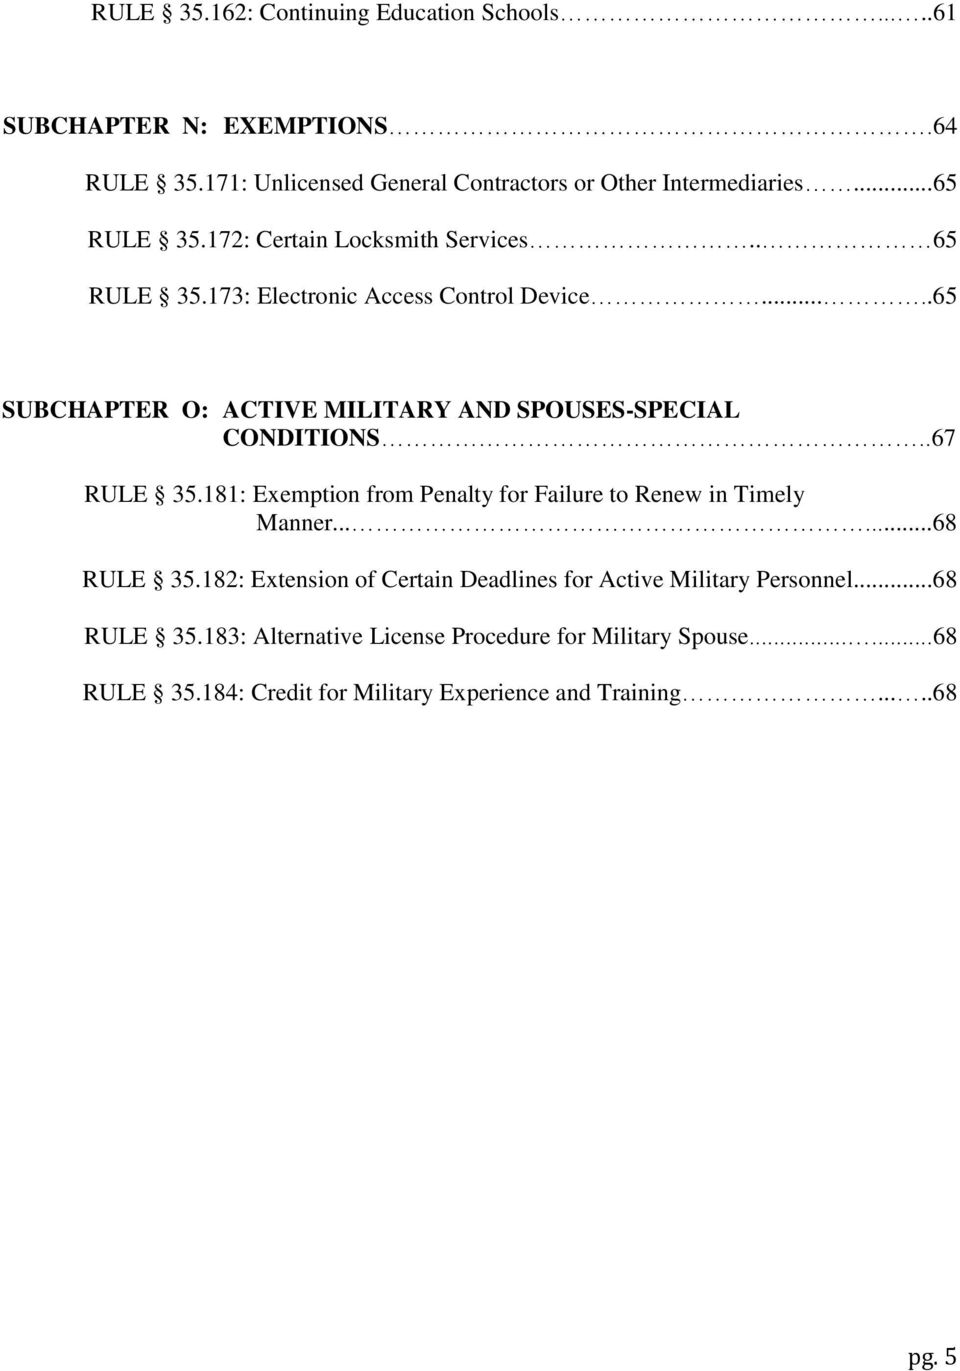 ....65 SUBCHAPTER O: ACTIVE MILITARY AND SPOUSES-SPECIAL CONDITIONS..67 RULE 35.181: Exemption from Penalty for Failure to Renew in Timely Manner.